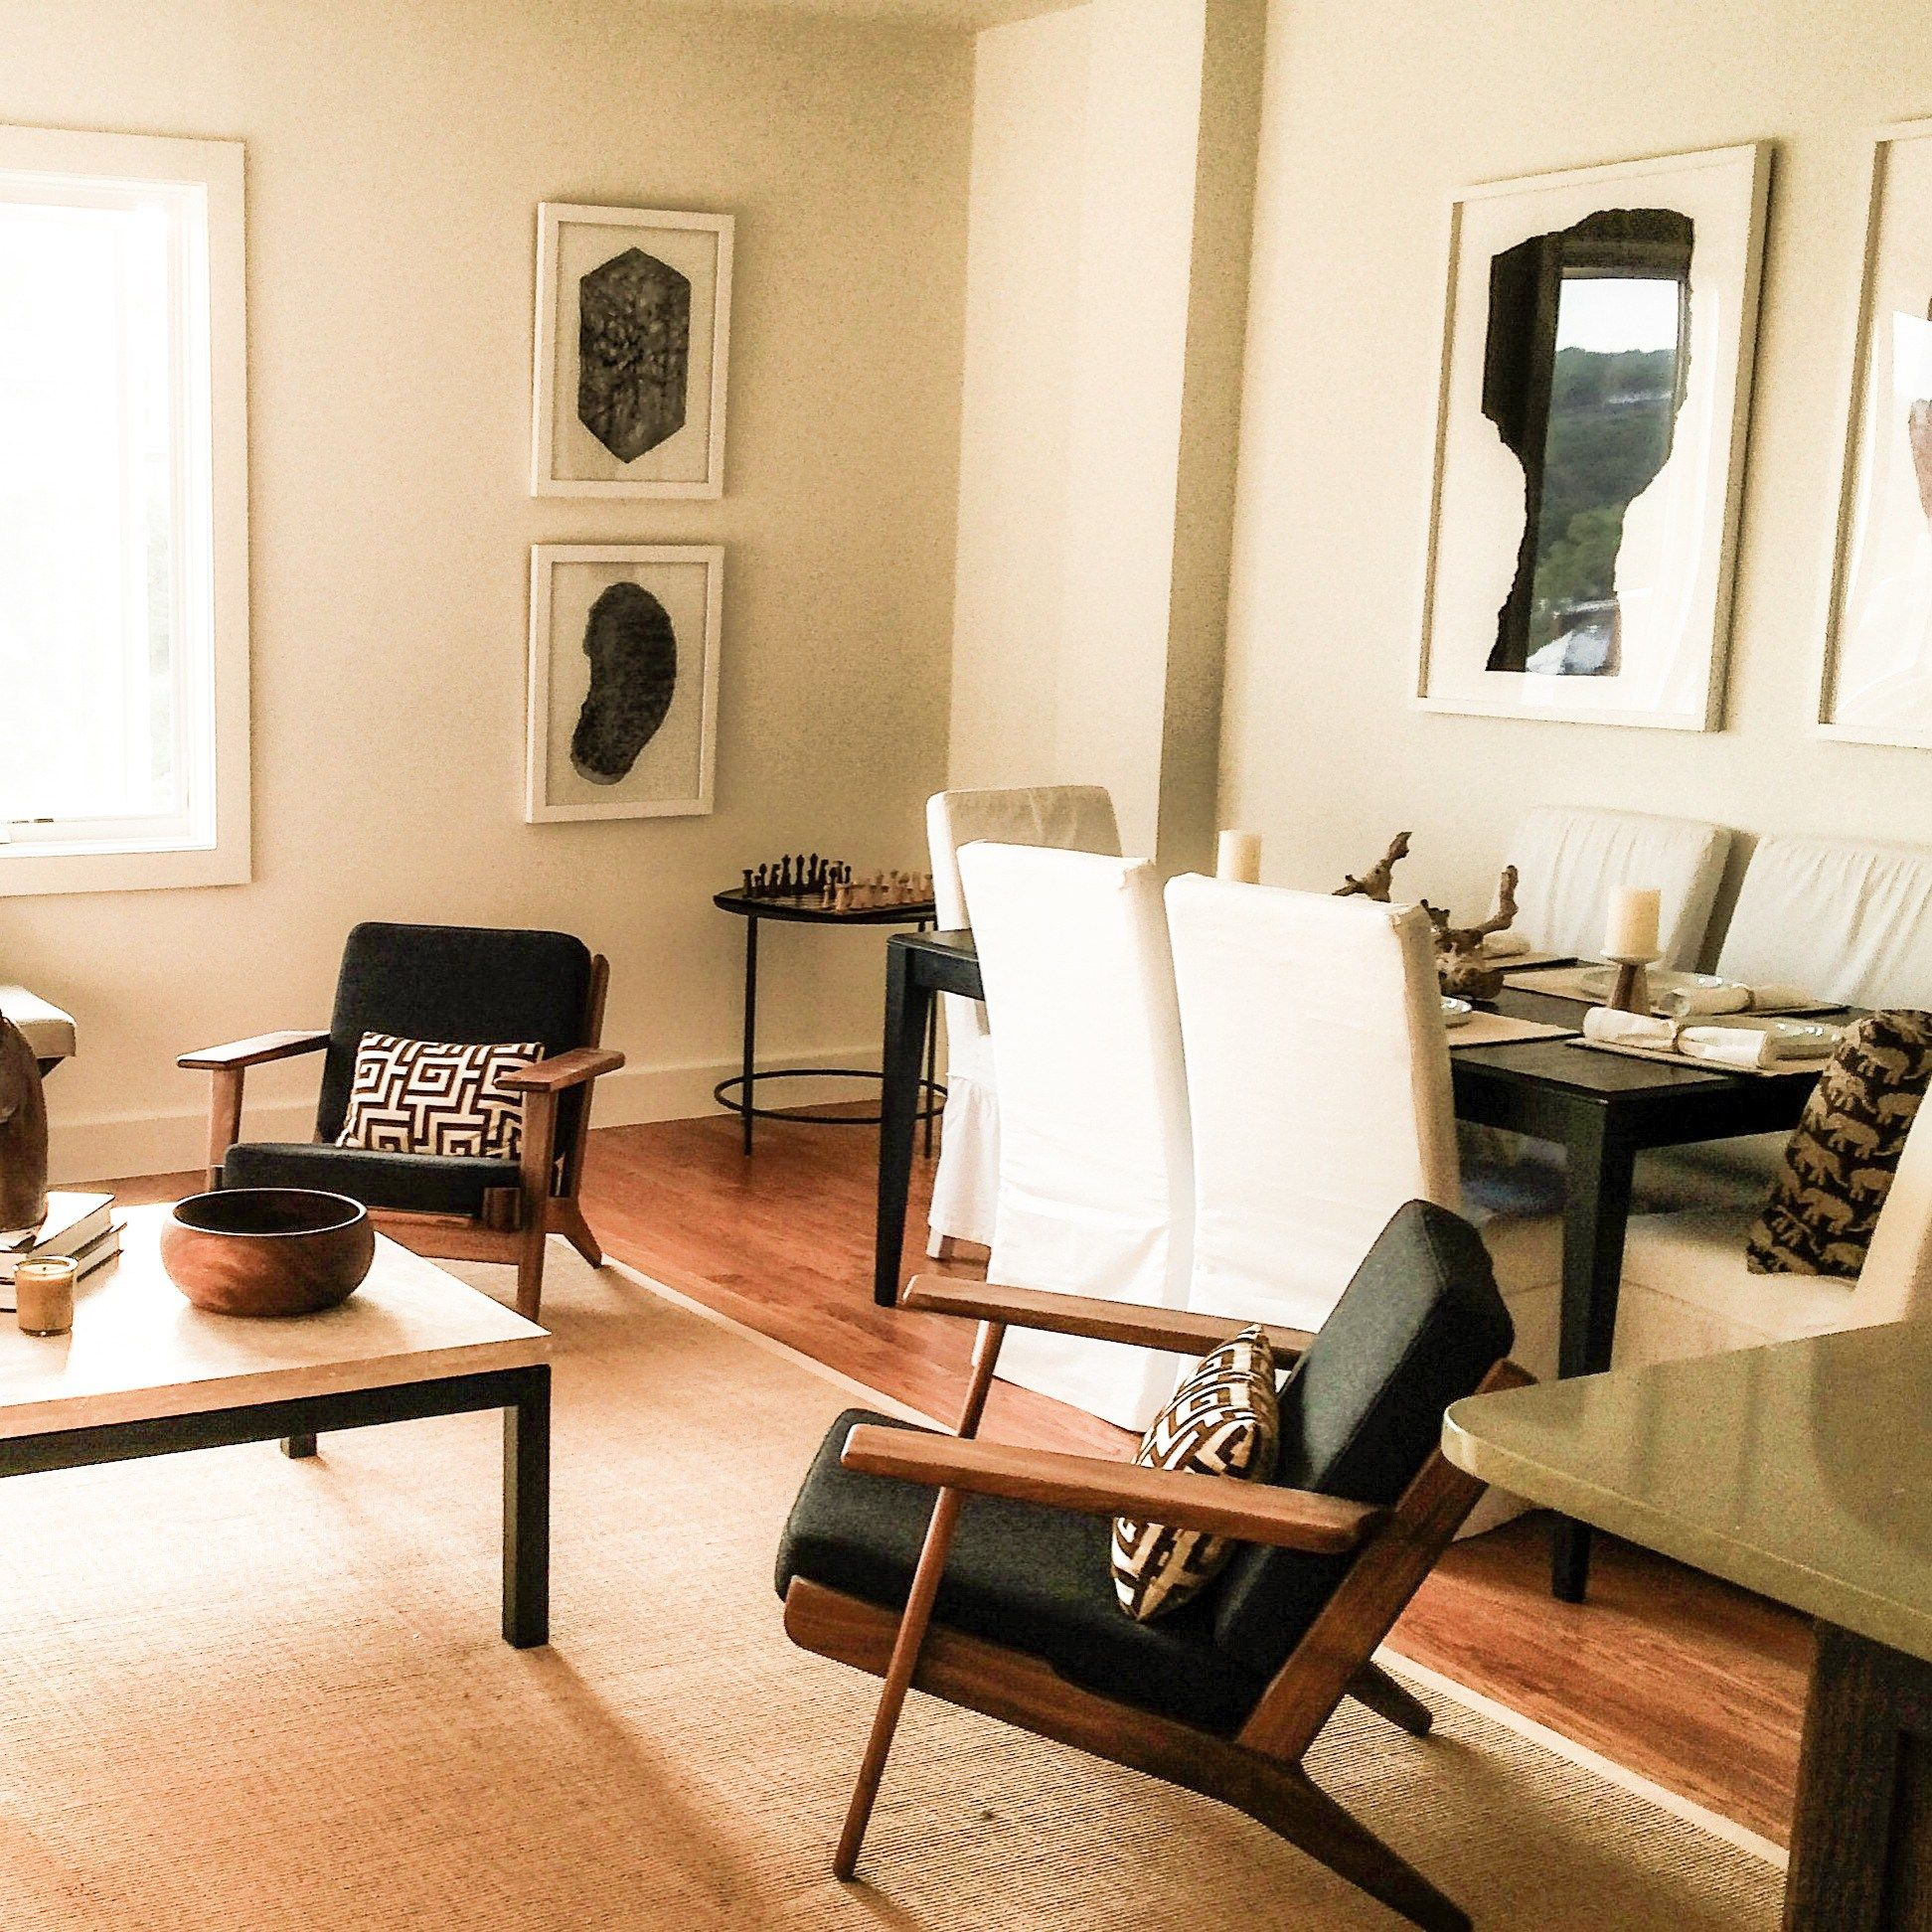 Staging NYC Interior Staging NY Small Space Interior Design Organizer NYC Affordable & Staging NYC Interior Staging NY Small Space Interior Design ...